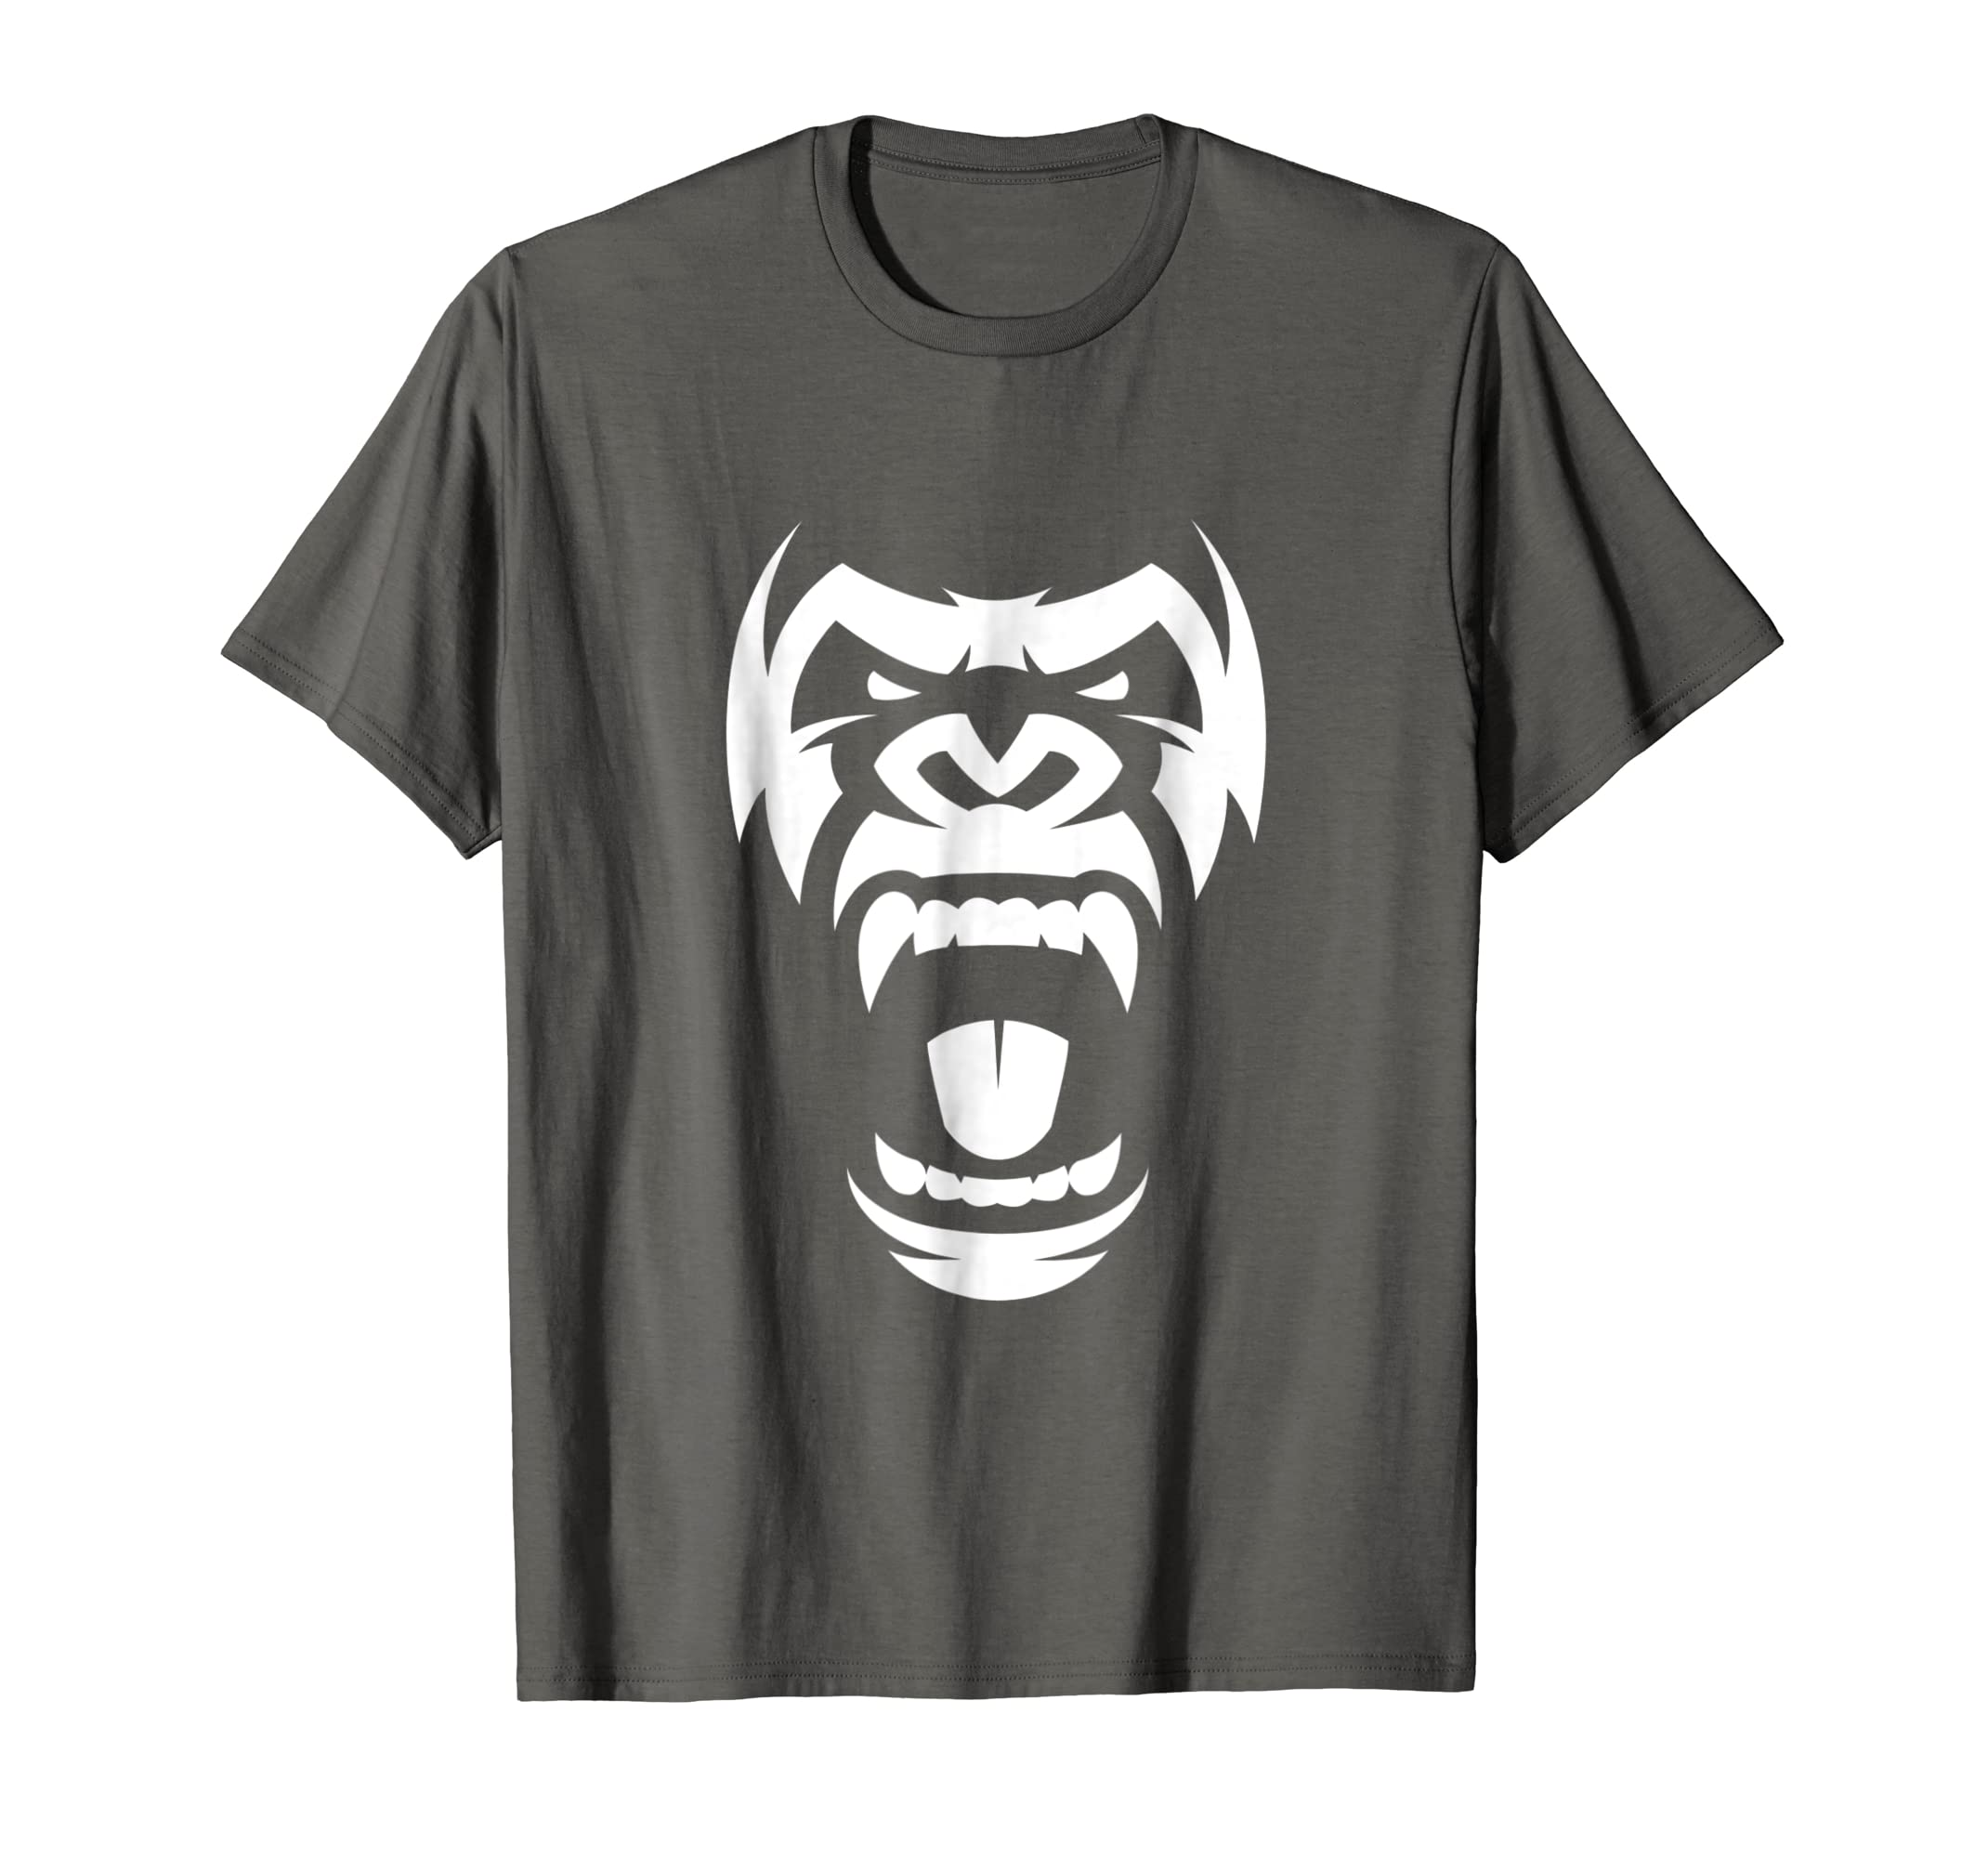 ff4bd05ff Amazon.com: Angry Gorilla T-Shirt - Furious Silverback: Clothing